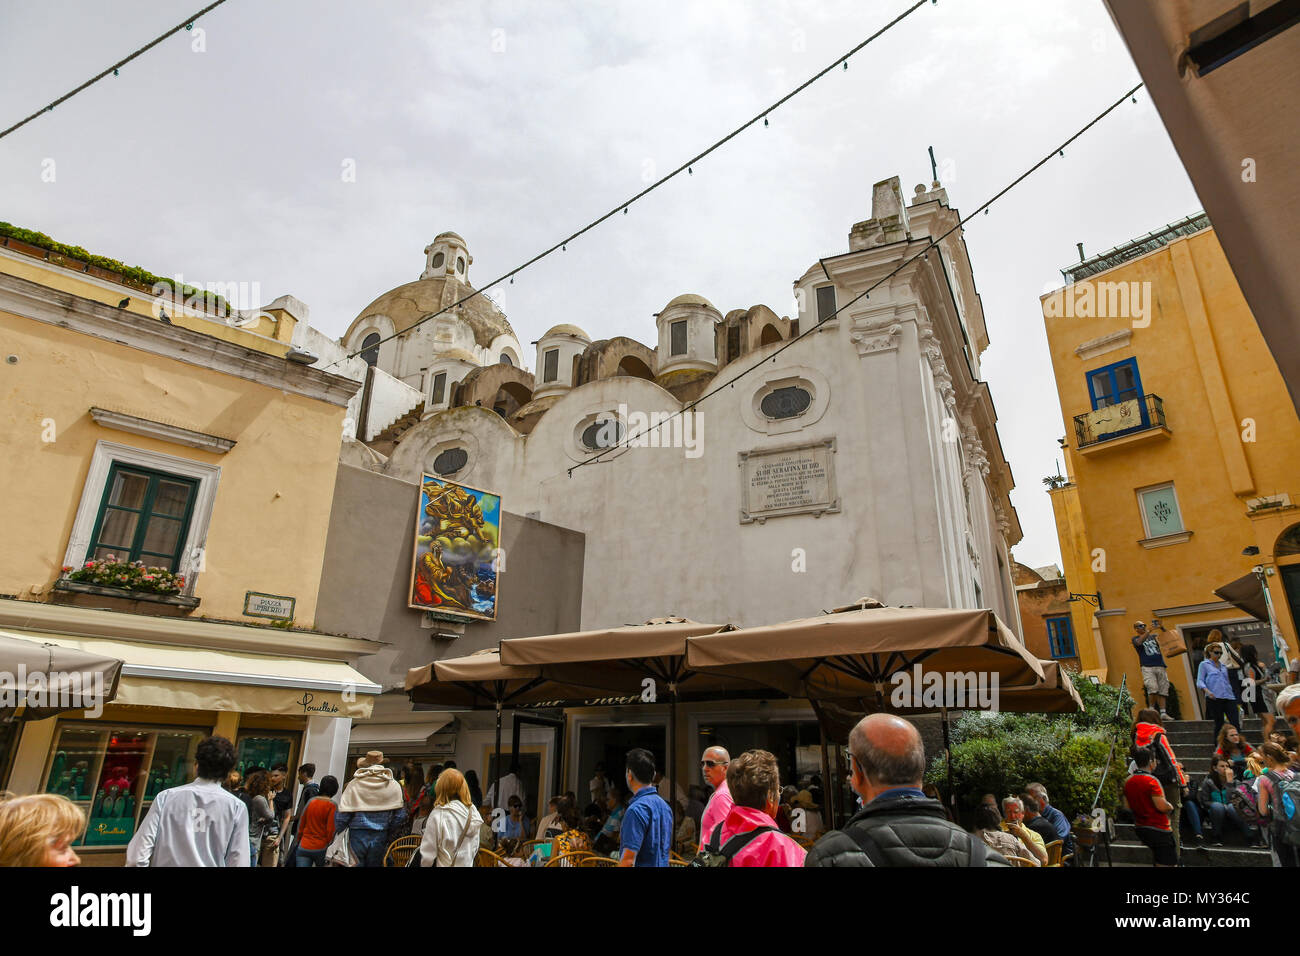 The church of Santo Stefano in a crowded Piazza Umberto, Capri, Campania, Italy - Stock Image